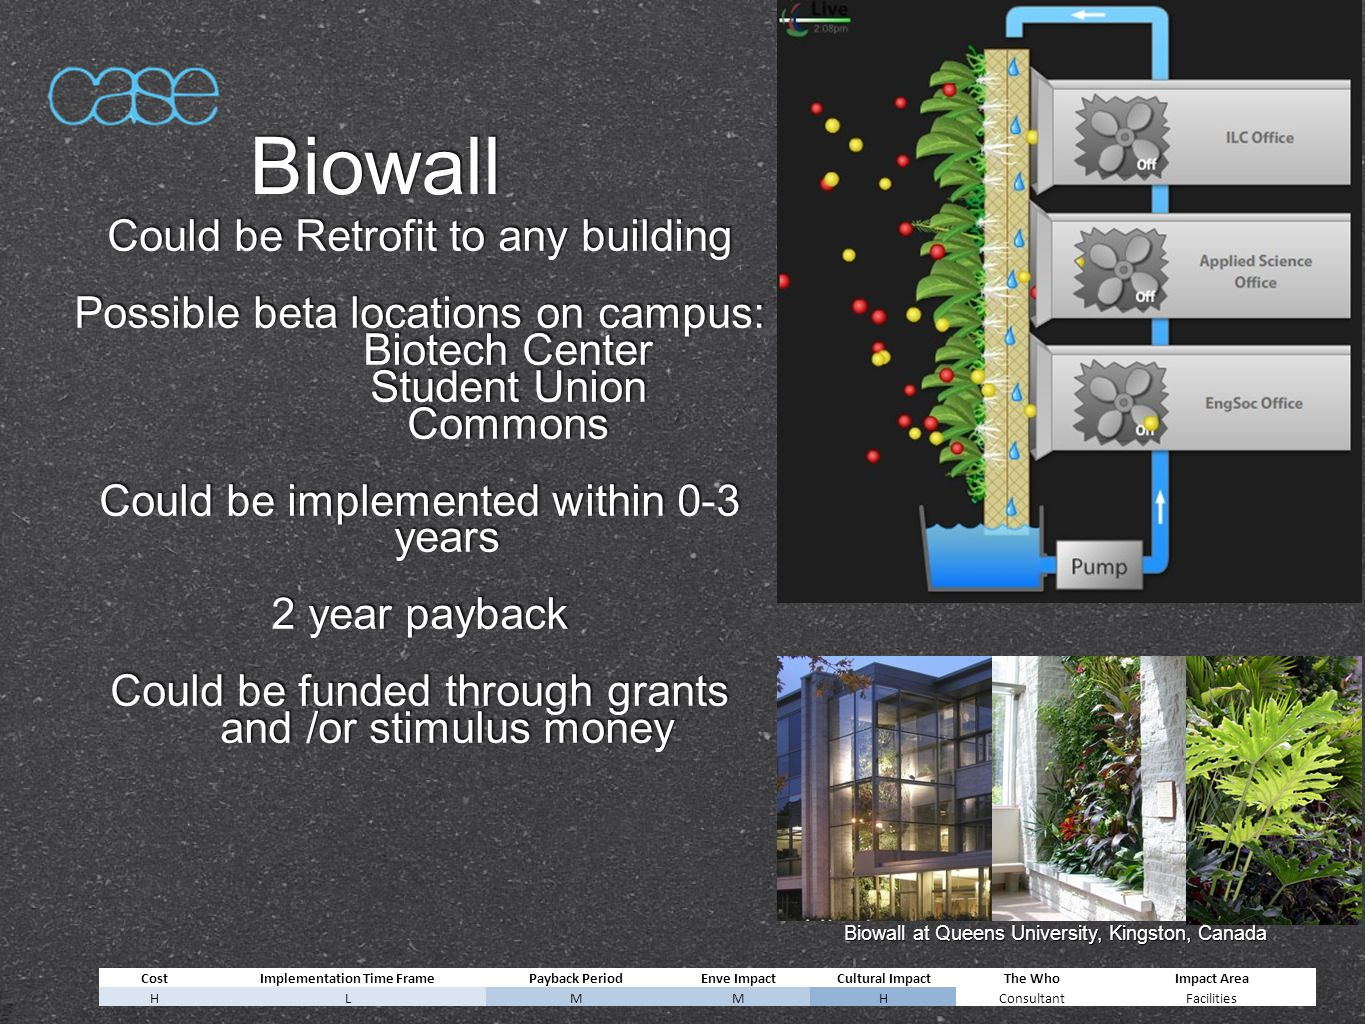 Biowall Could be Retrofit to any building Possible beta locations on campus: Biotech Center Student Union Commons Could be implemented within 0-3 years 2 year payback Could be funded through grants and /or stimulus money Could be Retrofit to any building Possible beta locations on campus: Biotech Center Student Union Commons Could be implemented within 0-3 years 2 year payback Could be funded through grants and /or stimulus money Biowall at Queens University, Kingston, Canada CostImplementation Time FramePayback PeriodEnve ImpactCultural ImpactThe WhoImpact Area HLMMHConsultantFacilities